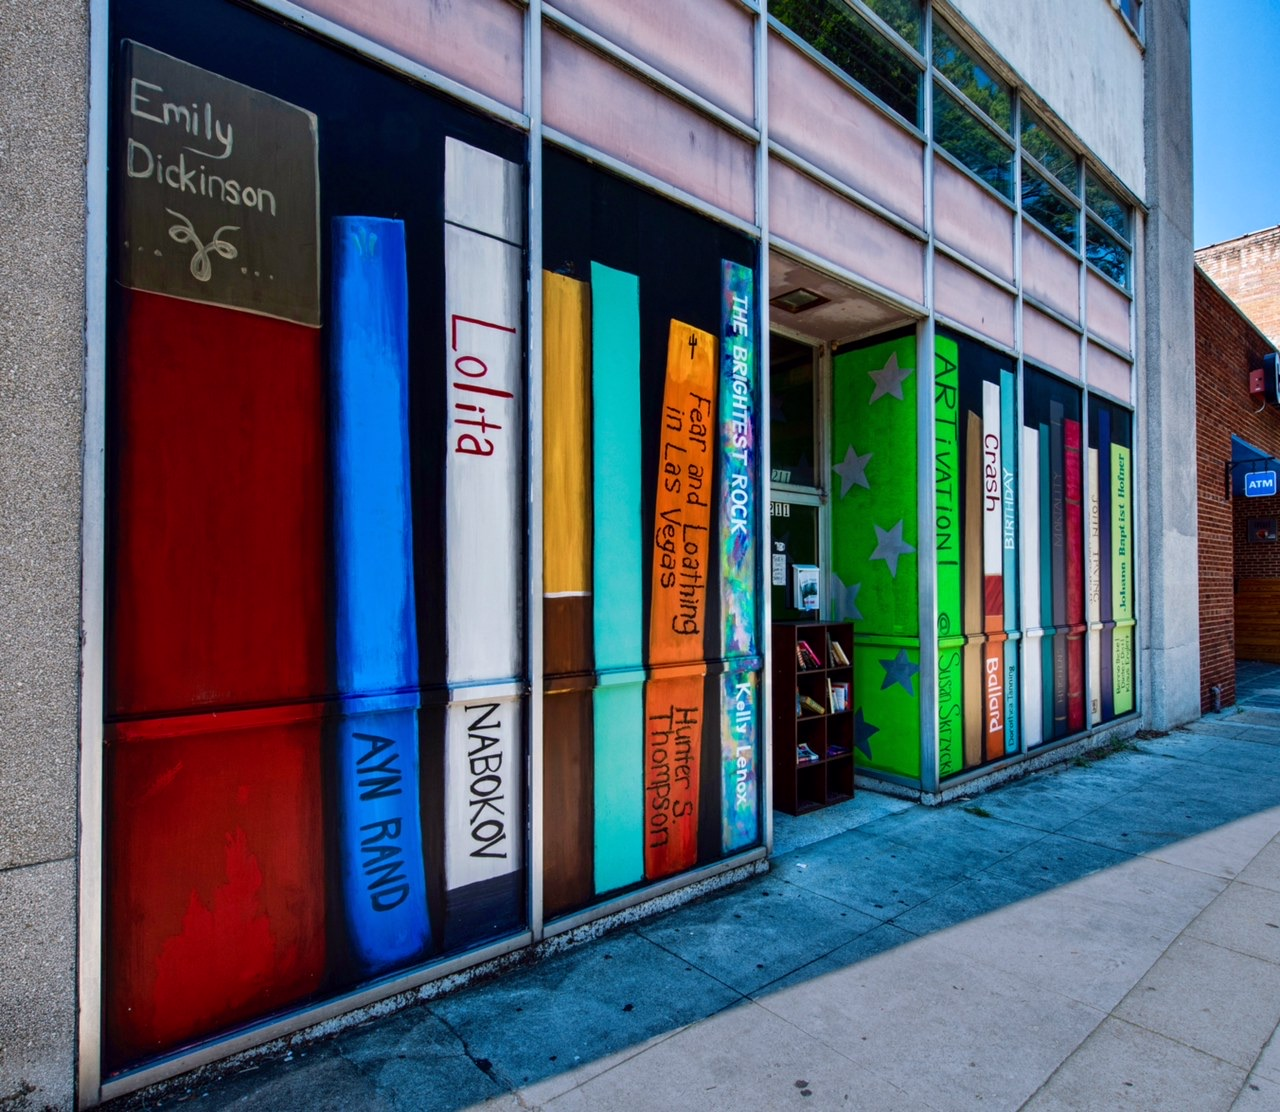 """Books"" by Susan Skryzcki and Photo by Steve Coad at 211 W Martin Street"